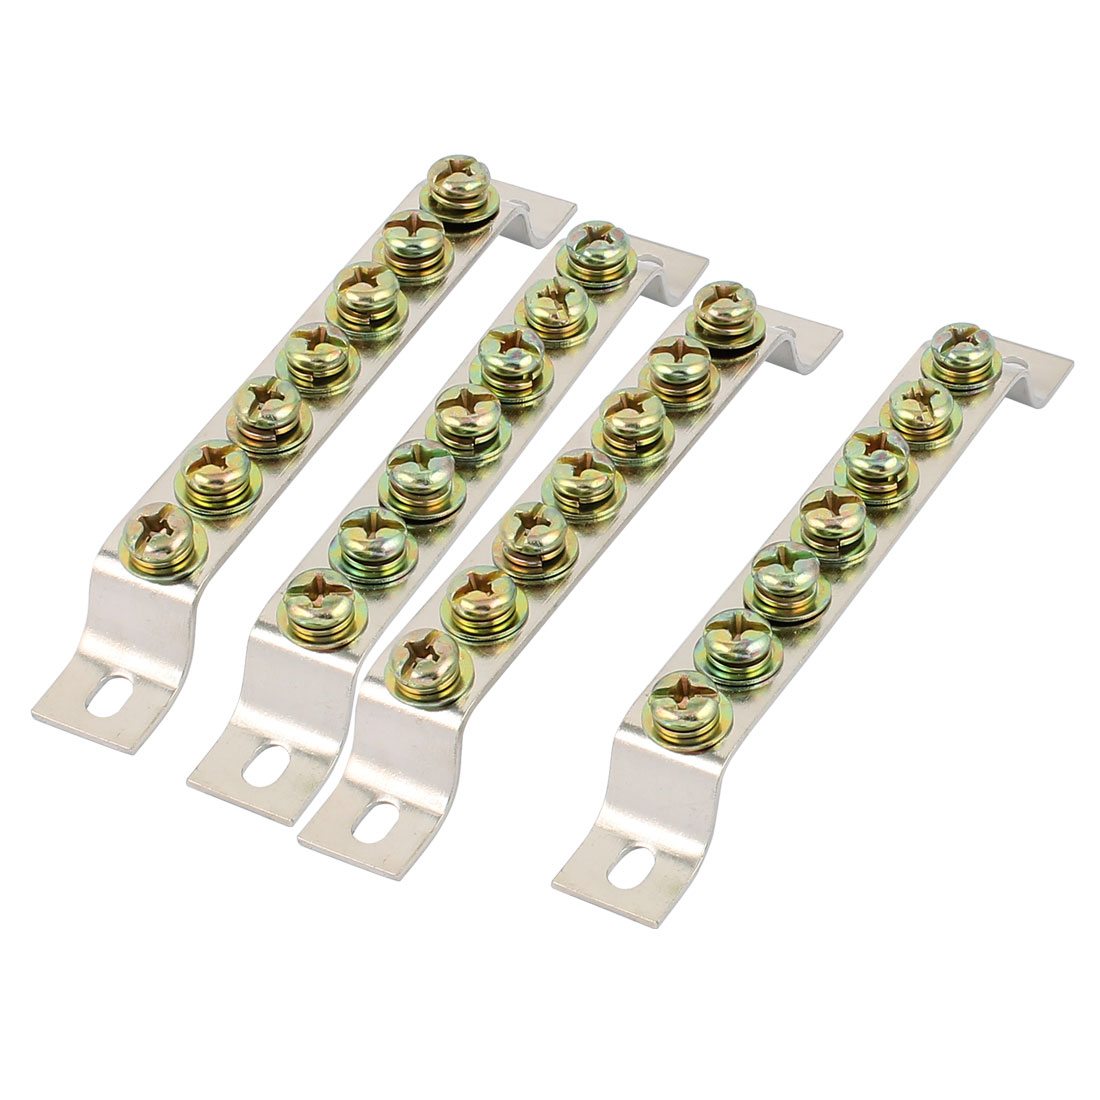 4PCS Single Row 7 Holes Ground Wire Bridge Shape Copper Screw Terminal Block Connector Bar